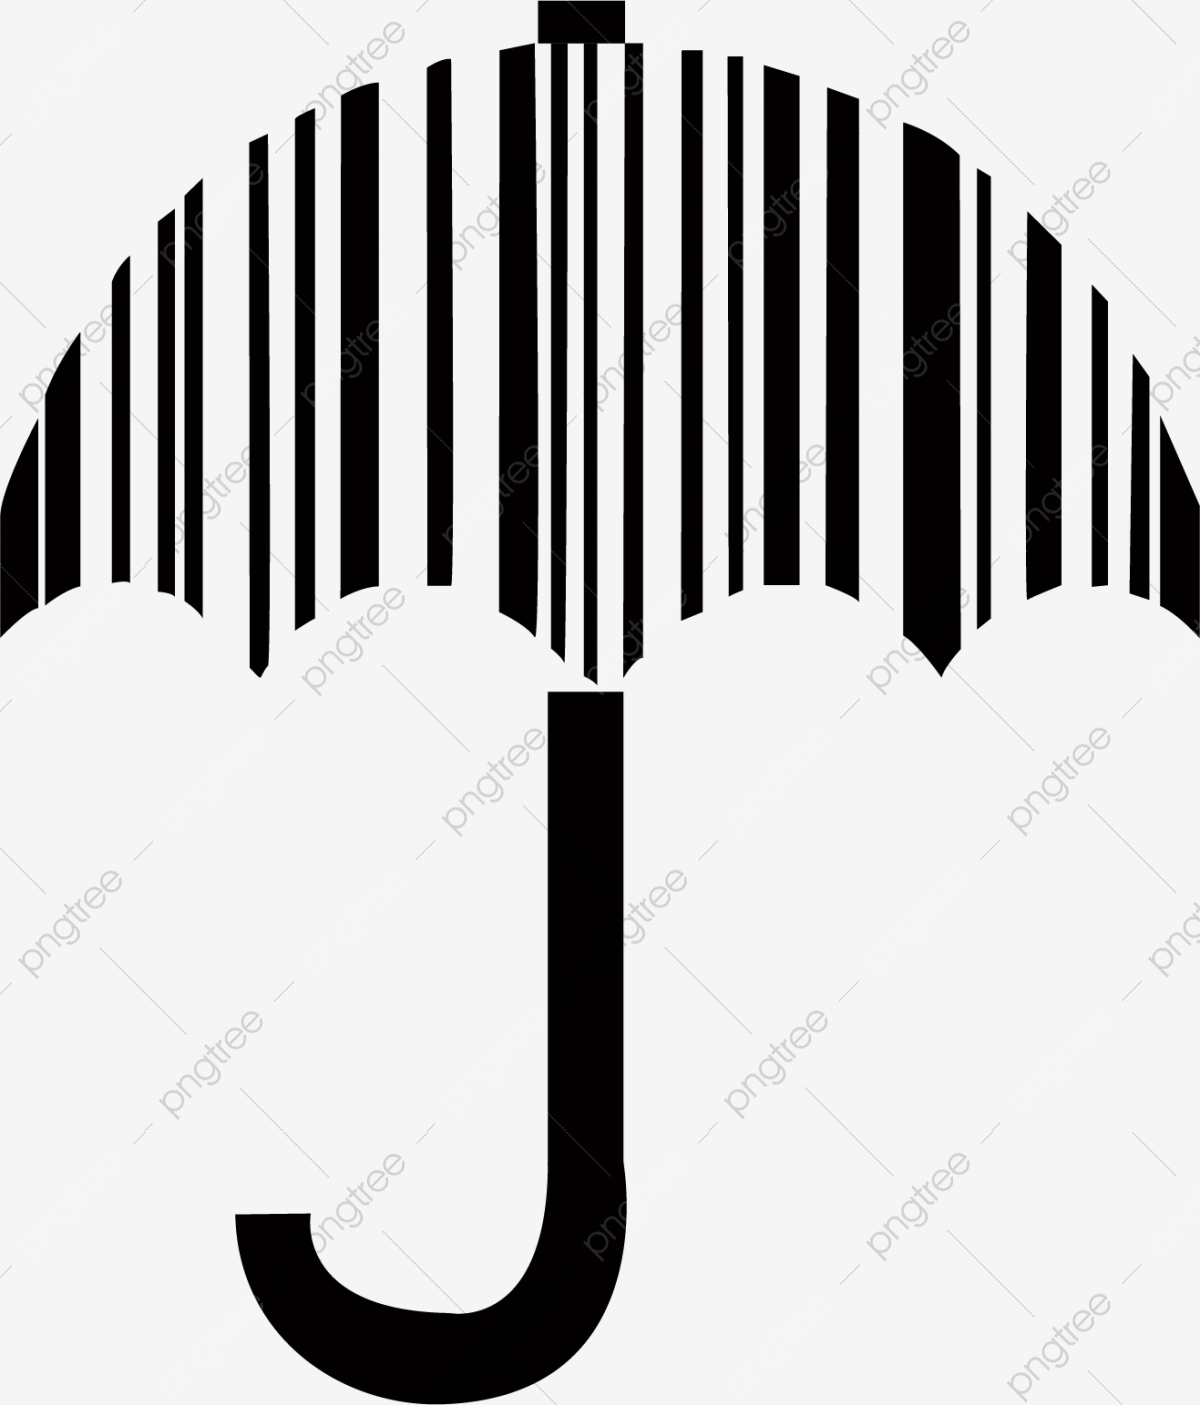 Creative Barcode, Barcode Vector, Creative, Barcode PNG and